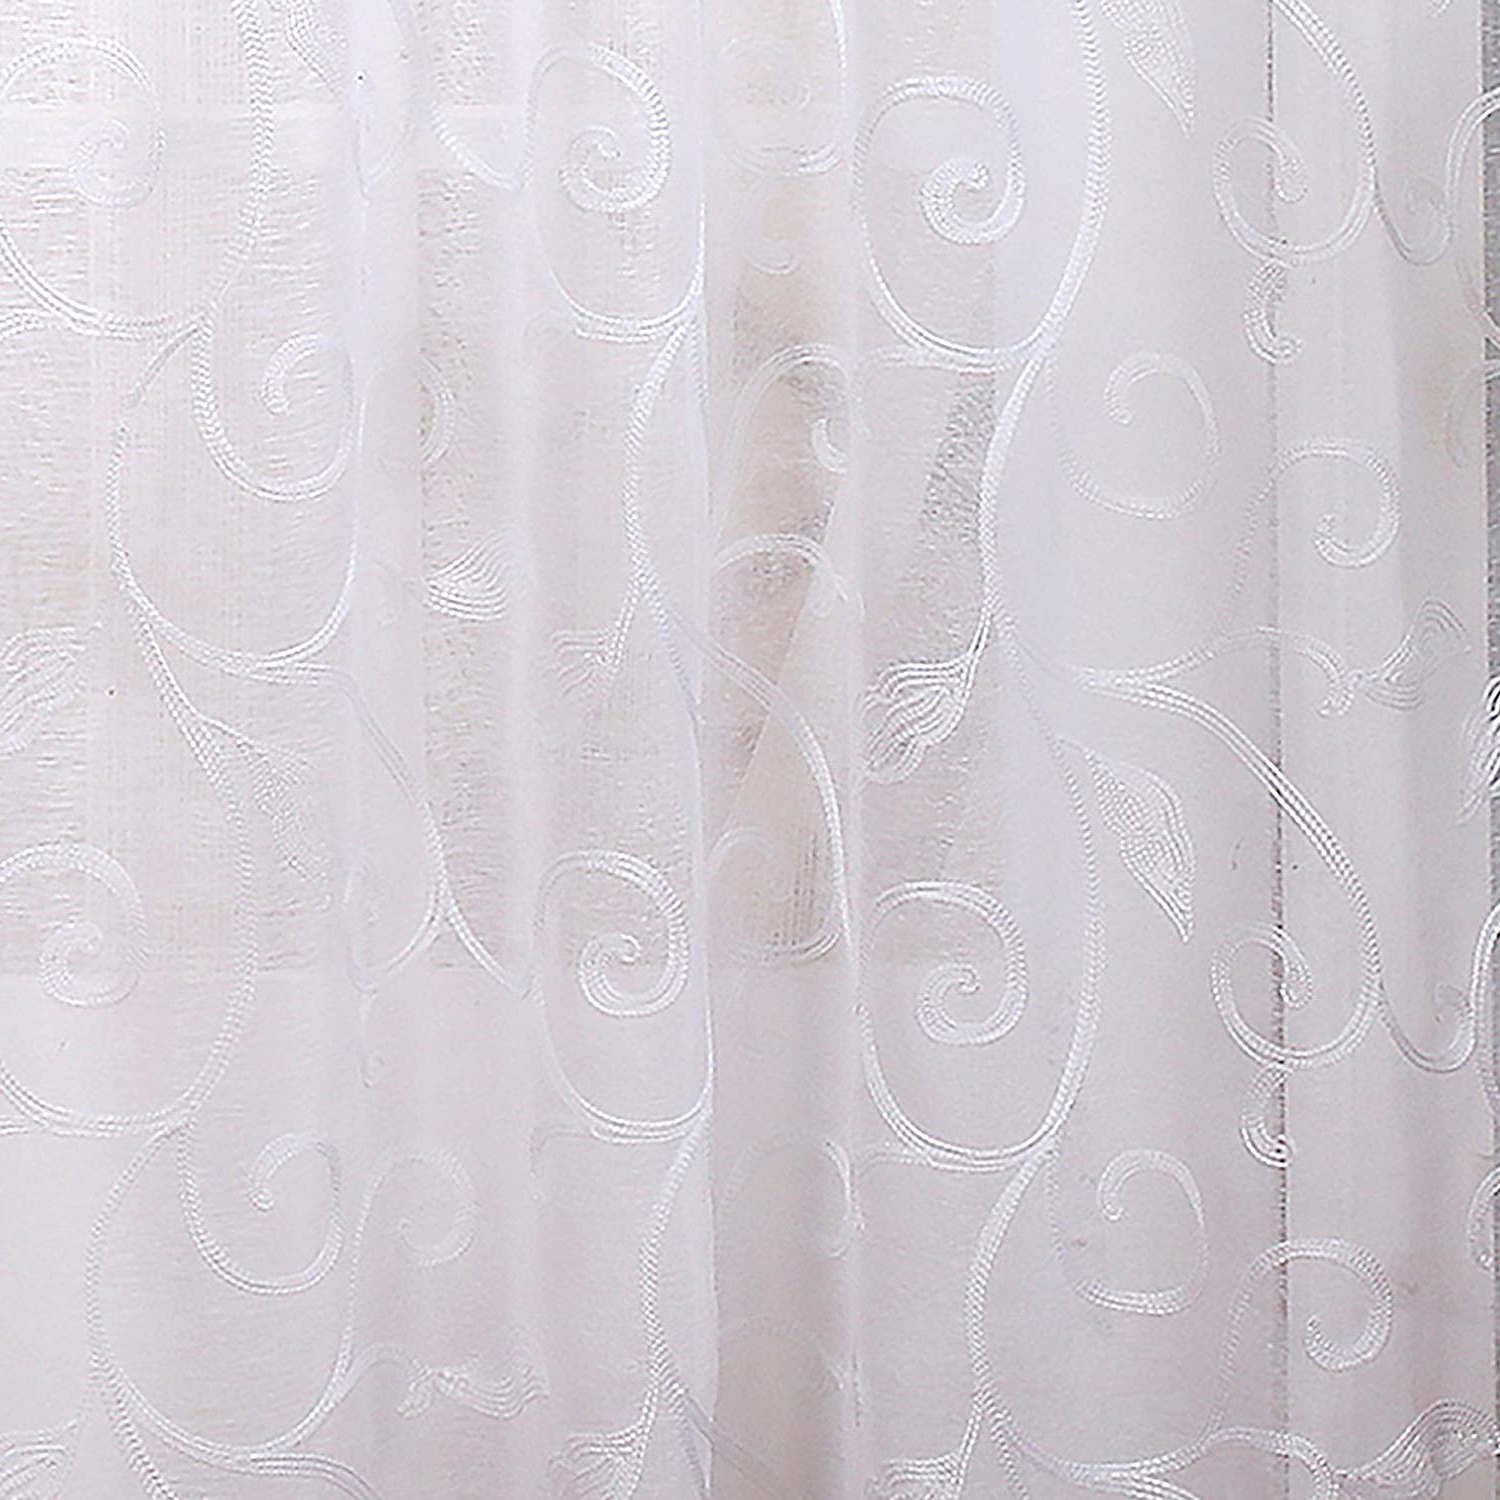 Overseas Leaf Swirl Embroidered Curtain Panel Pairs Throughout Widely Used Eluxurysupply 2 Pack 37 X 84 Inch Embroidered Sheet Panel Curtains Gray (View 14 of 21)